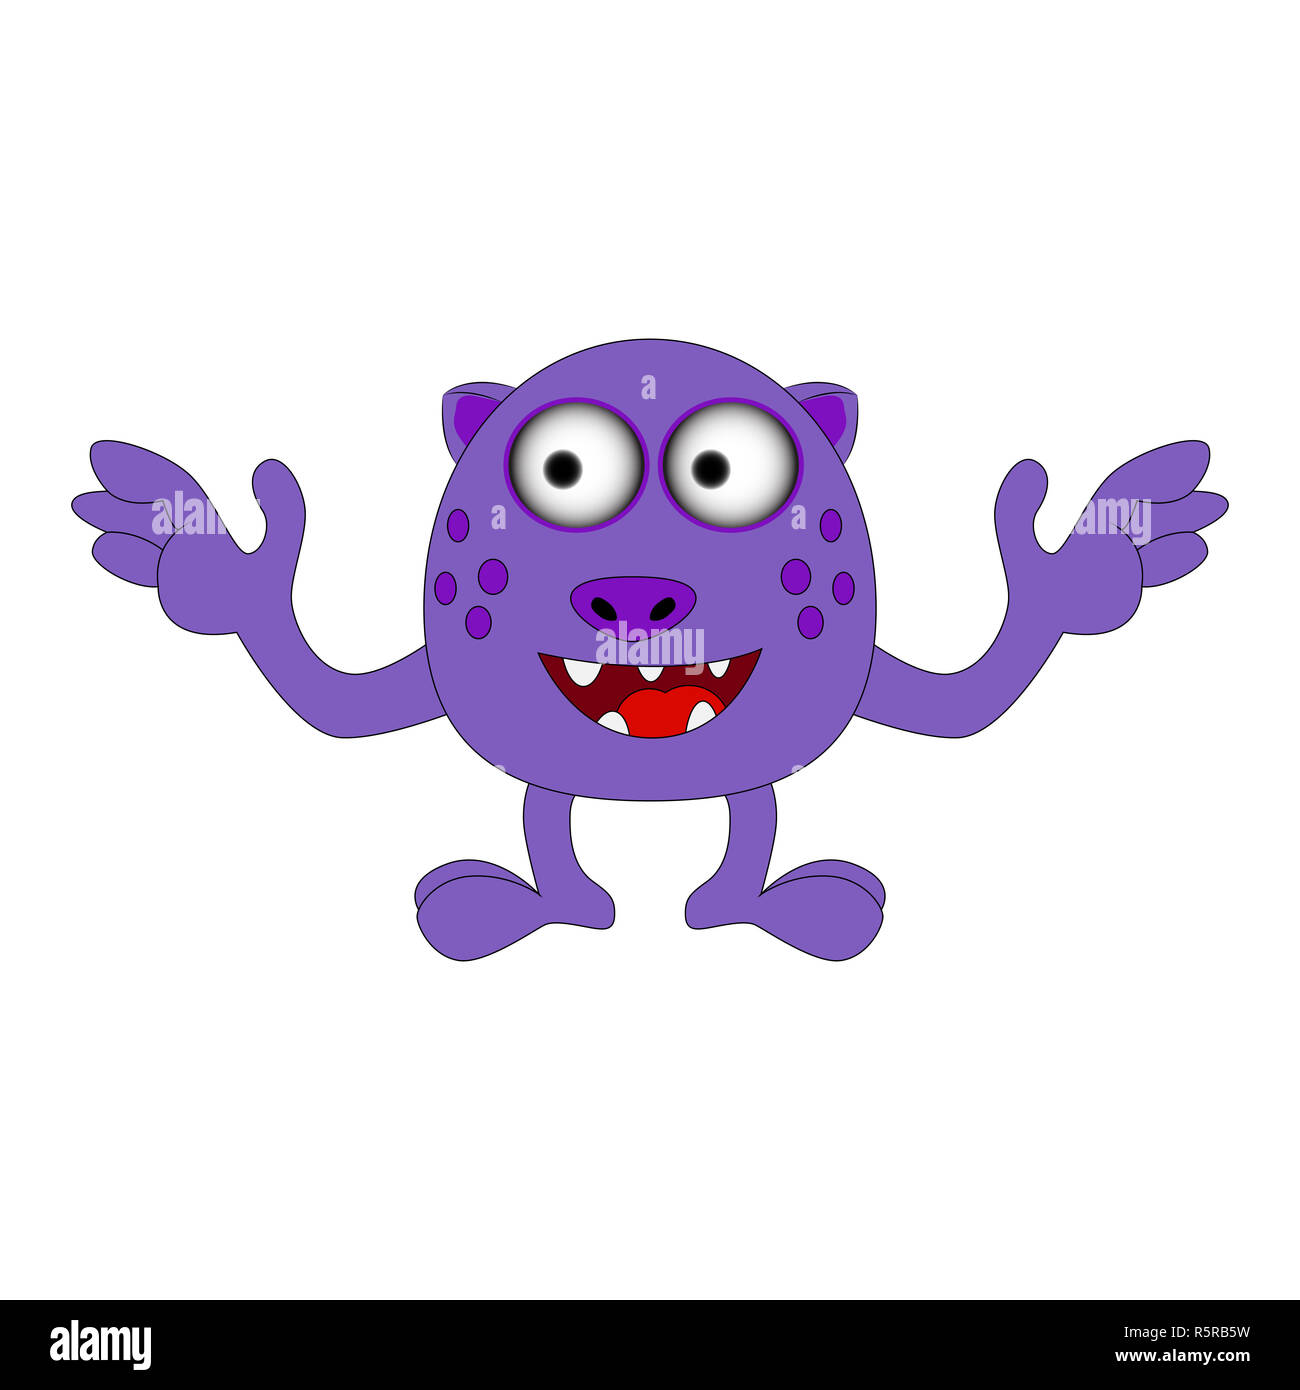 Halloween happy cartoon monster, funny, cute character vector illustration isolated on white background Stock Photo